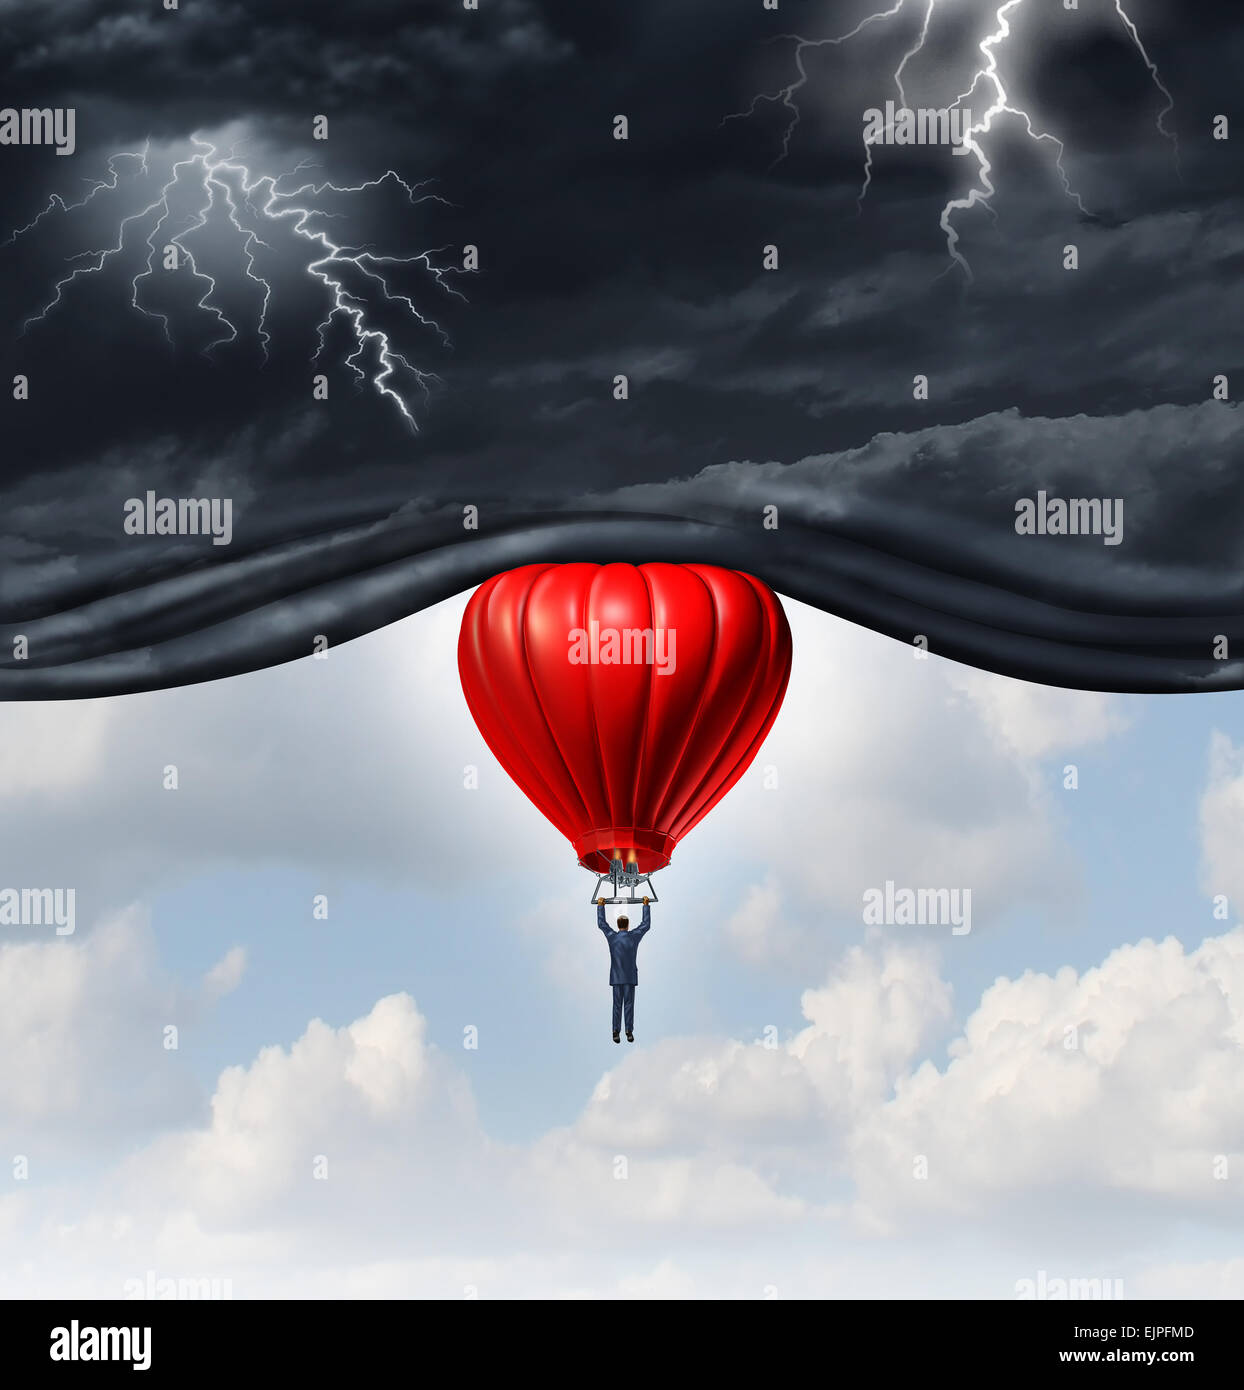 Positive outlook and recovery concept as a person or businessman riding a red hot air balloon lifting the dangerous - Stock Image